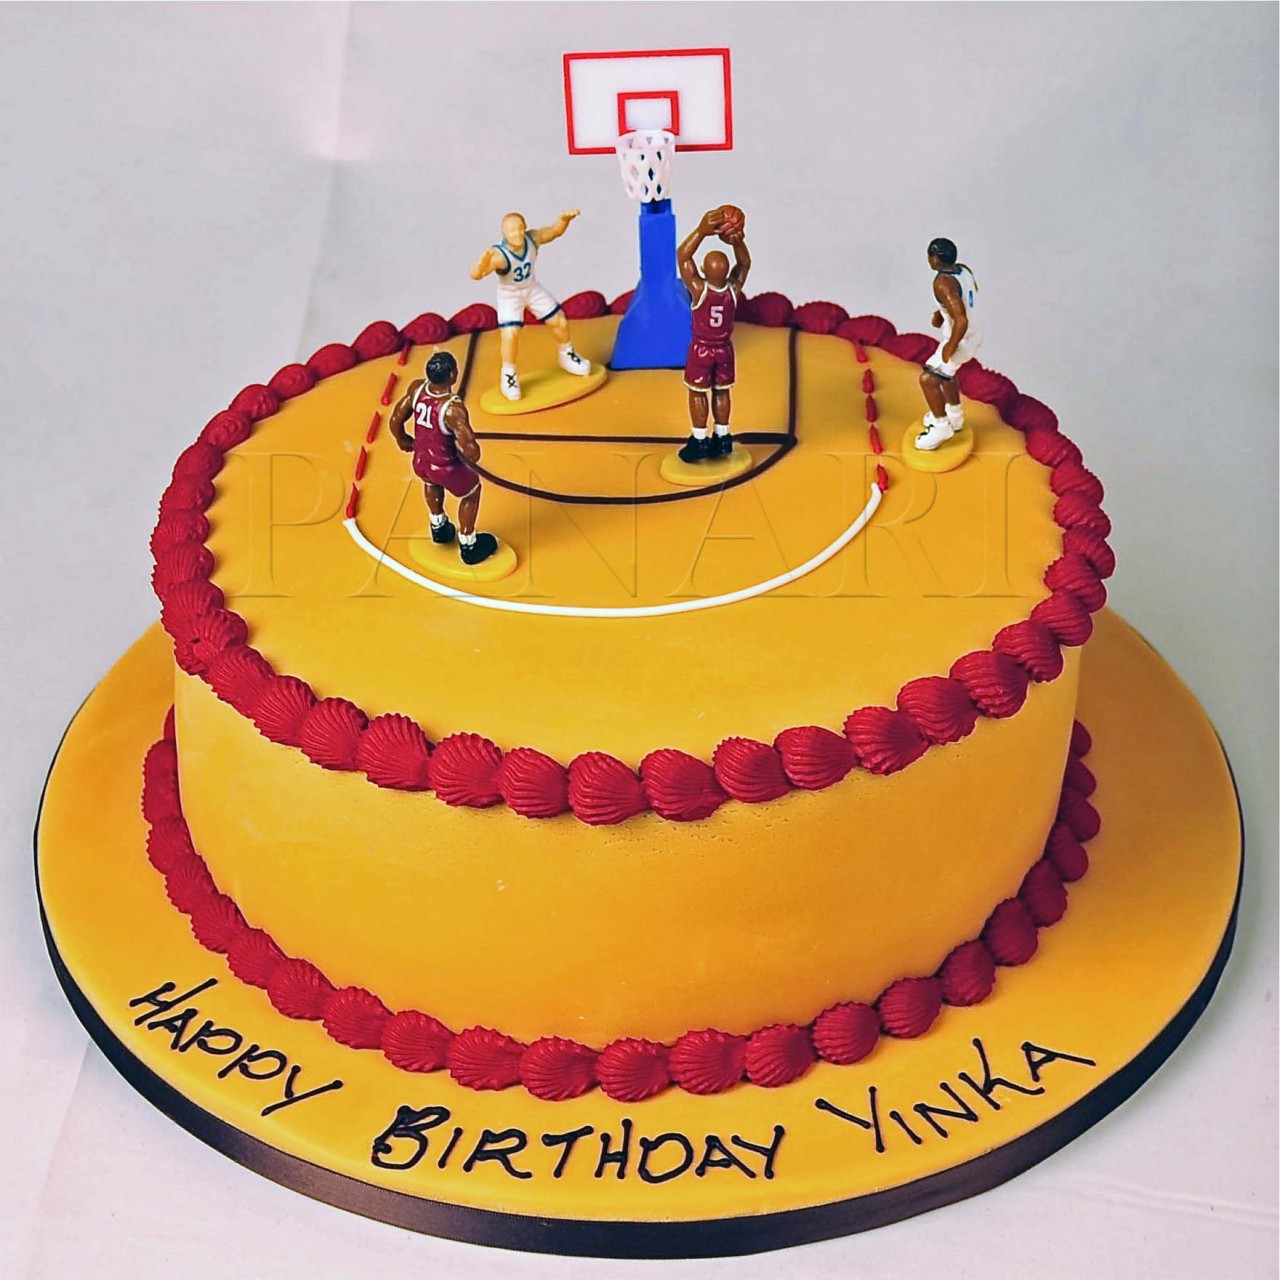 Ball Birthday Cake Design